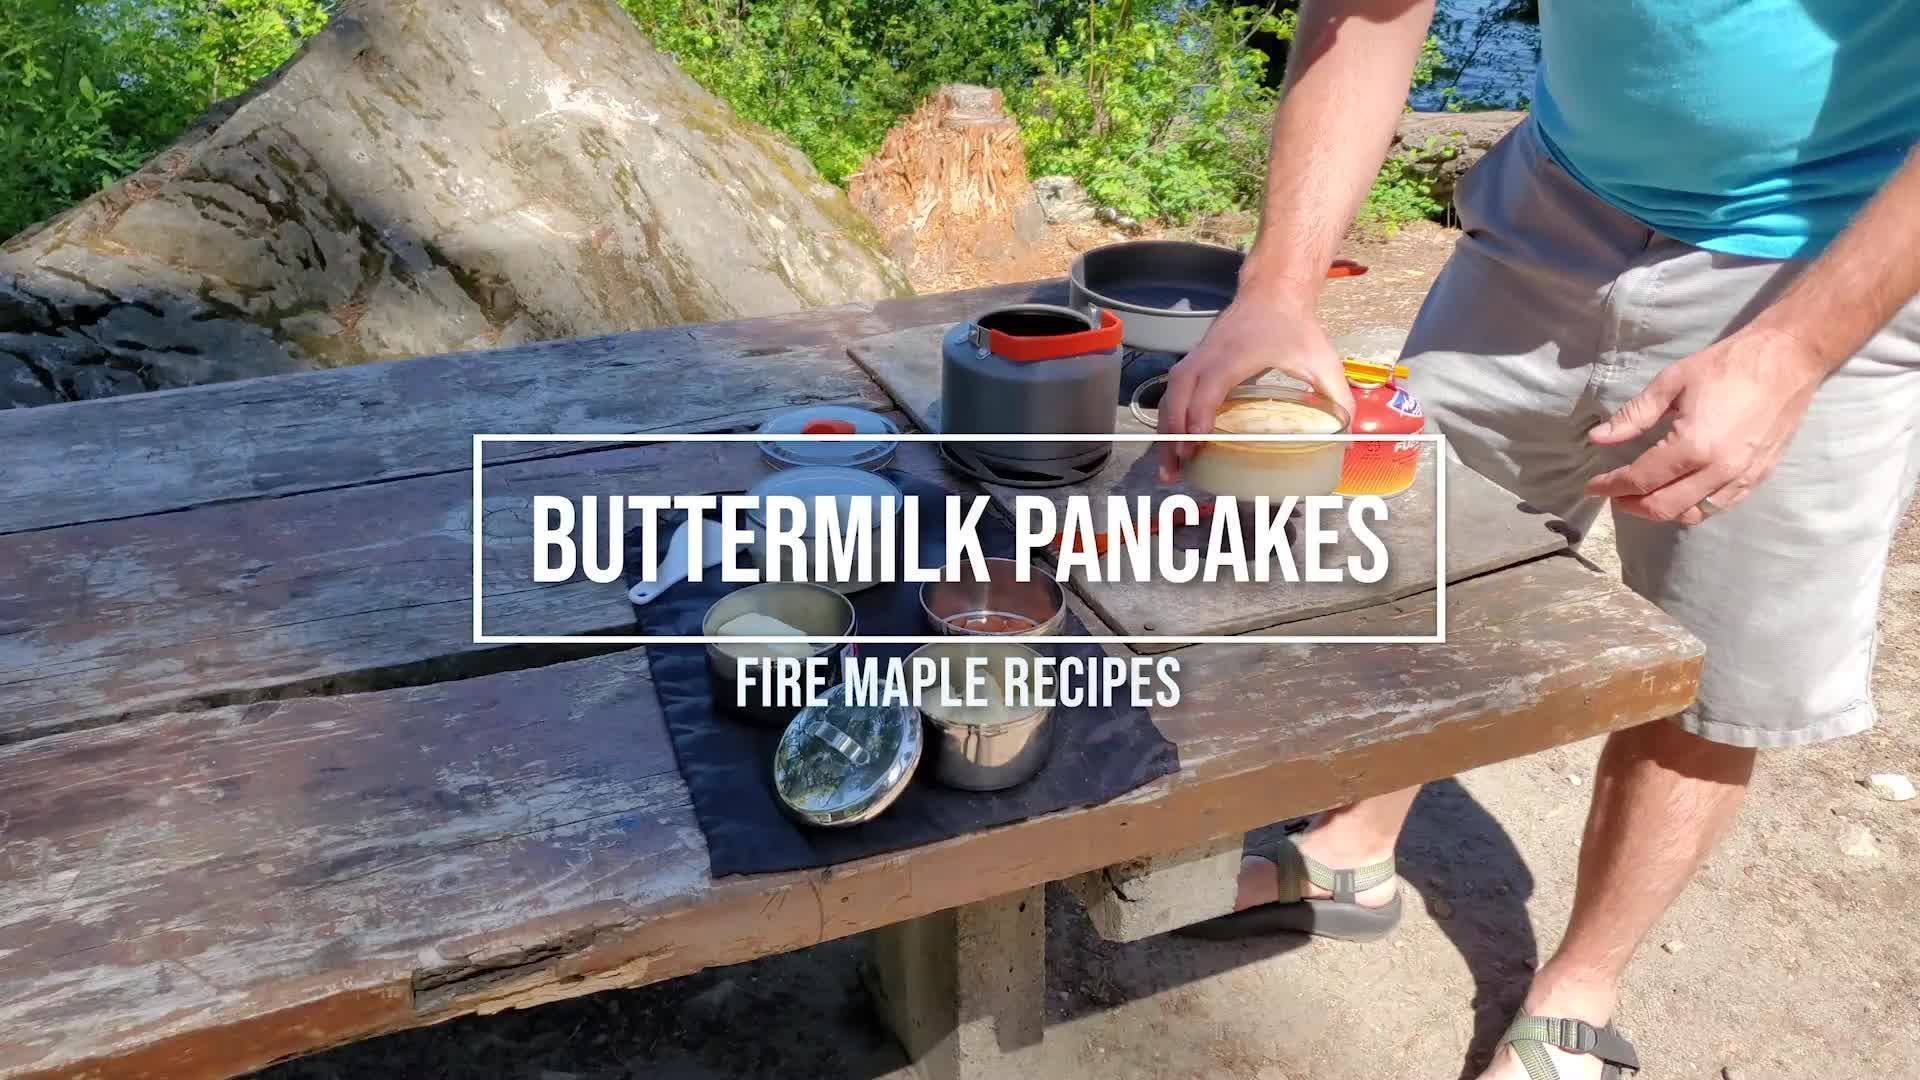 Easy Camping Recipe from Fire Maple | Buttermilk Pancakes 🥞